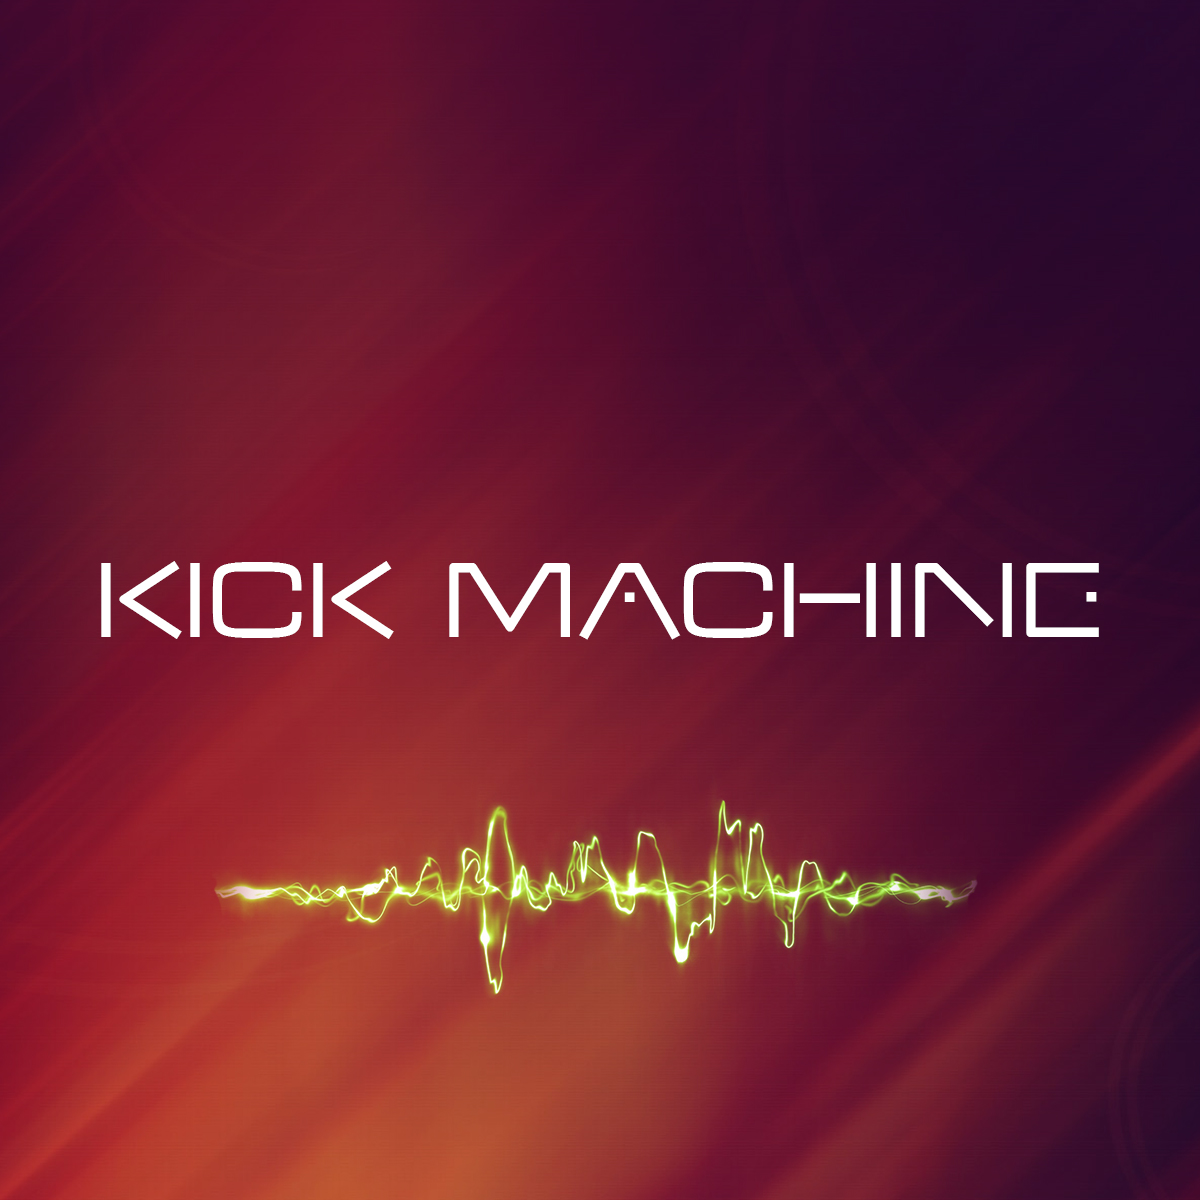 Kick Machine - Music Software Training - Jason Timothy